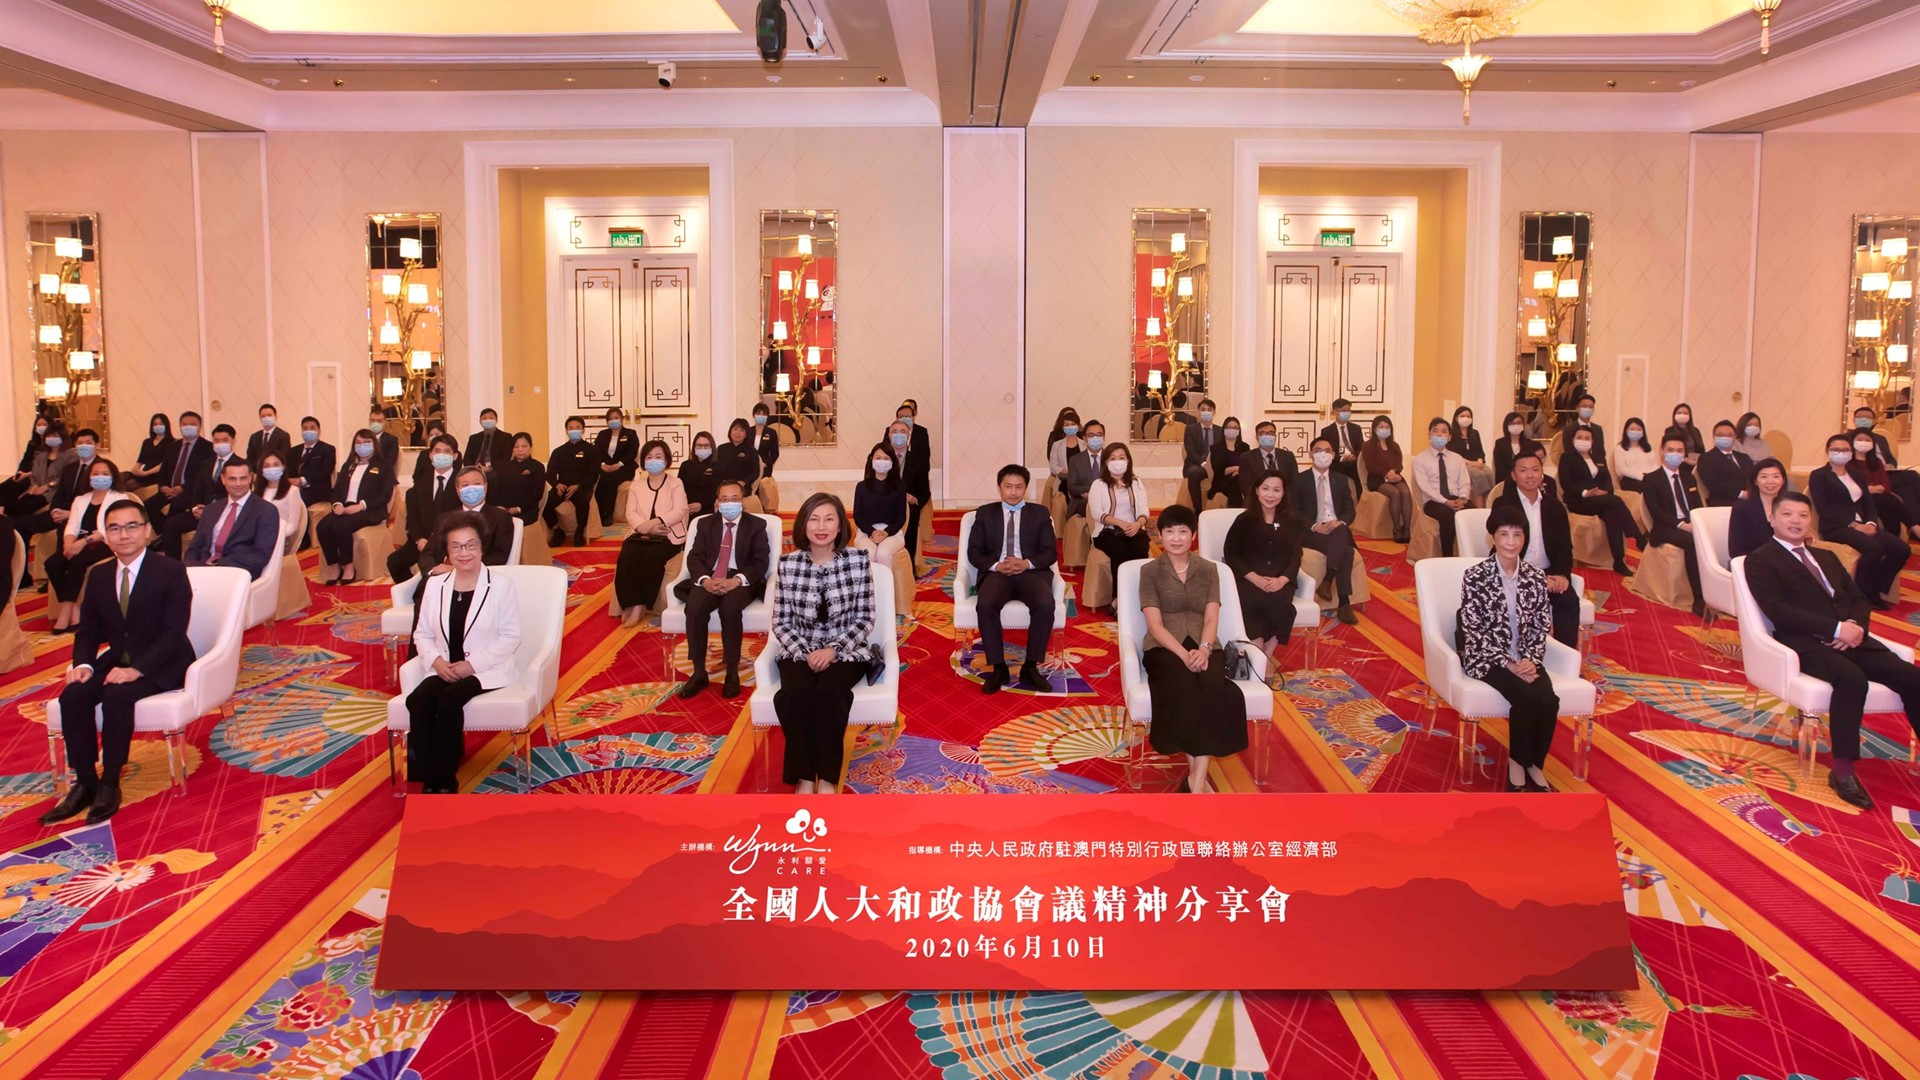 Wynn hosts sharing session on the spirit of NPC and CPPCC for team members